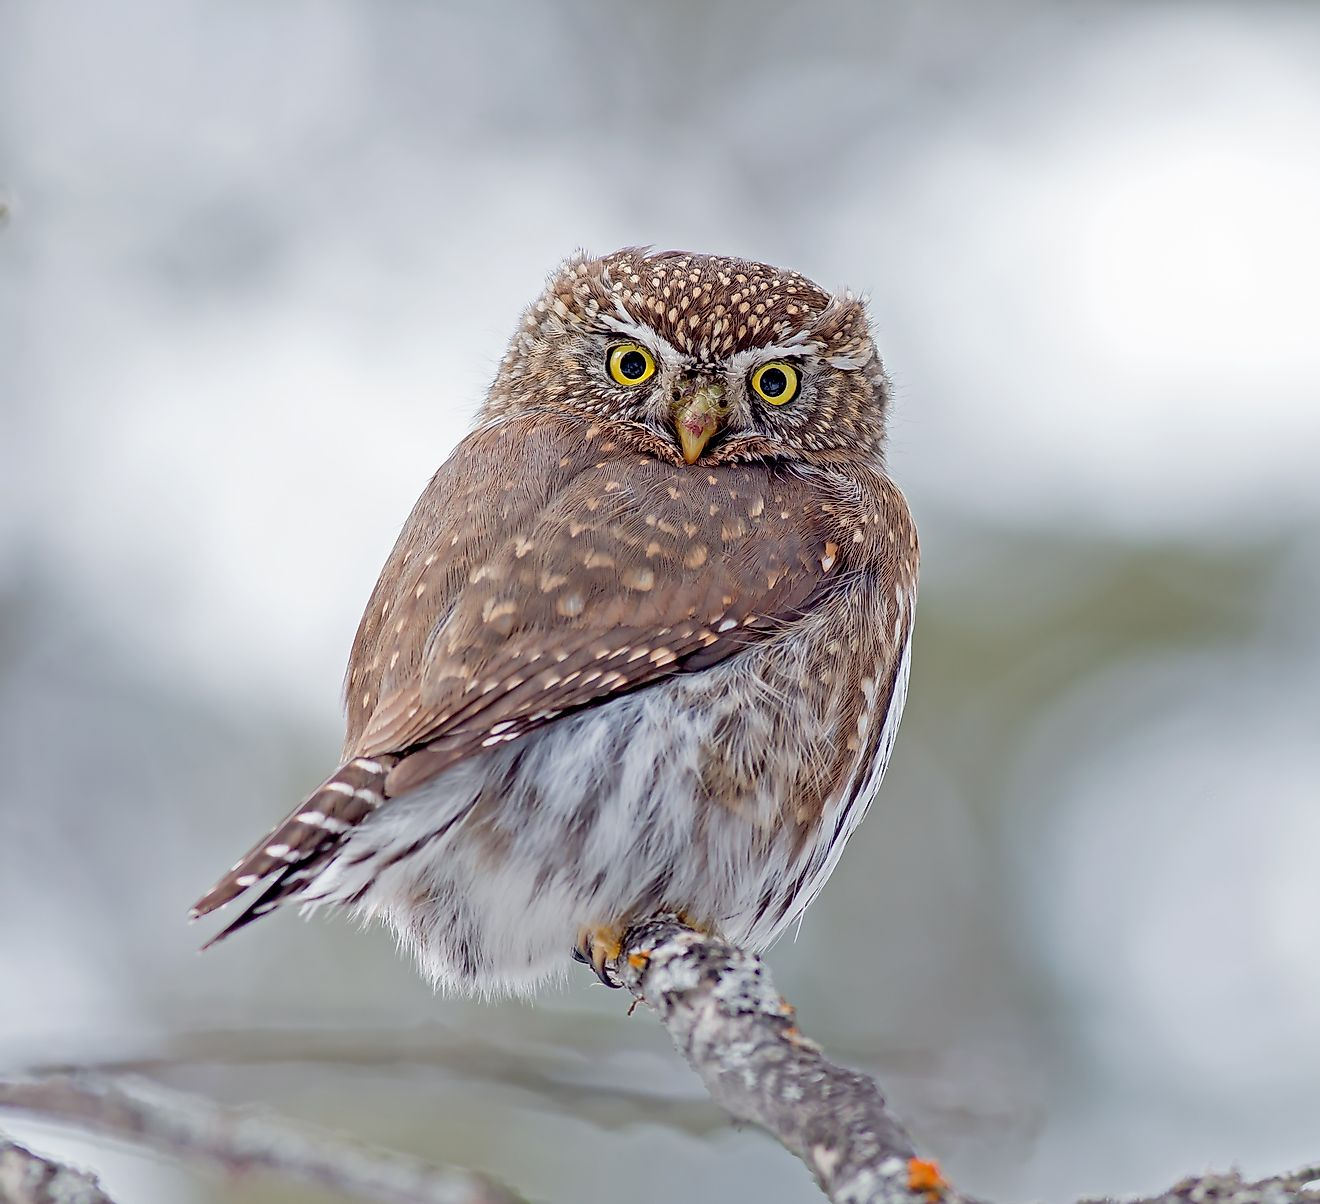 Northern Pygmy Owl is a small owl native to North and Central America.